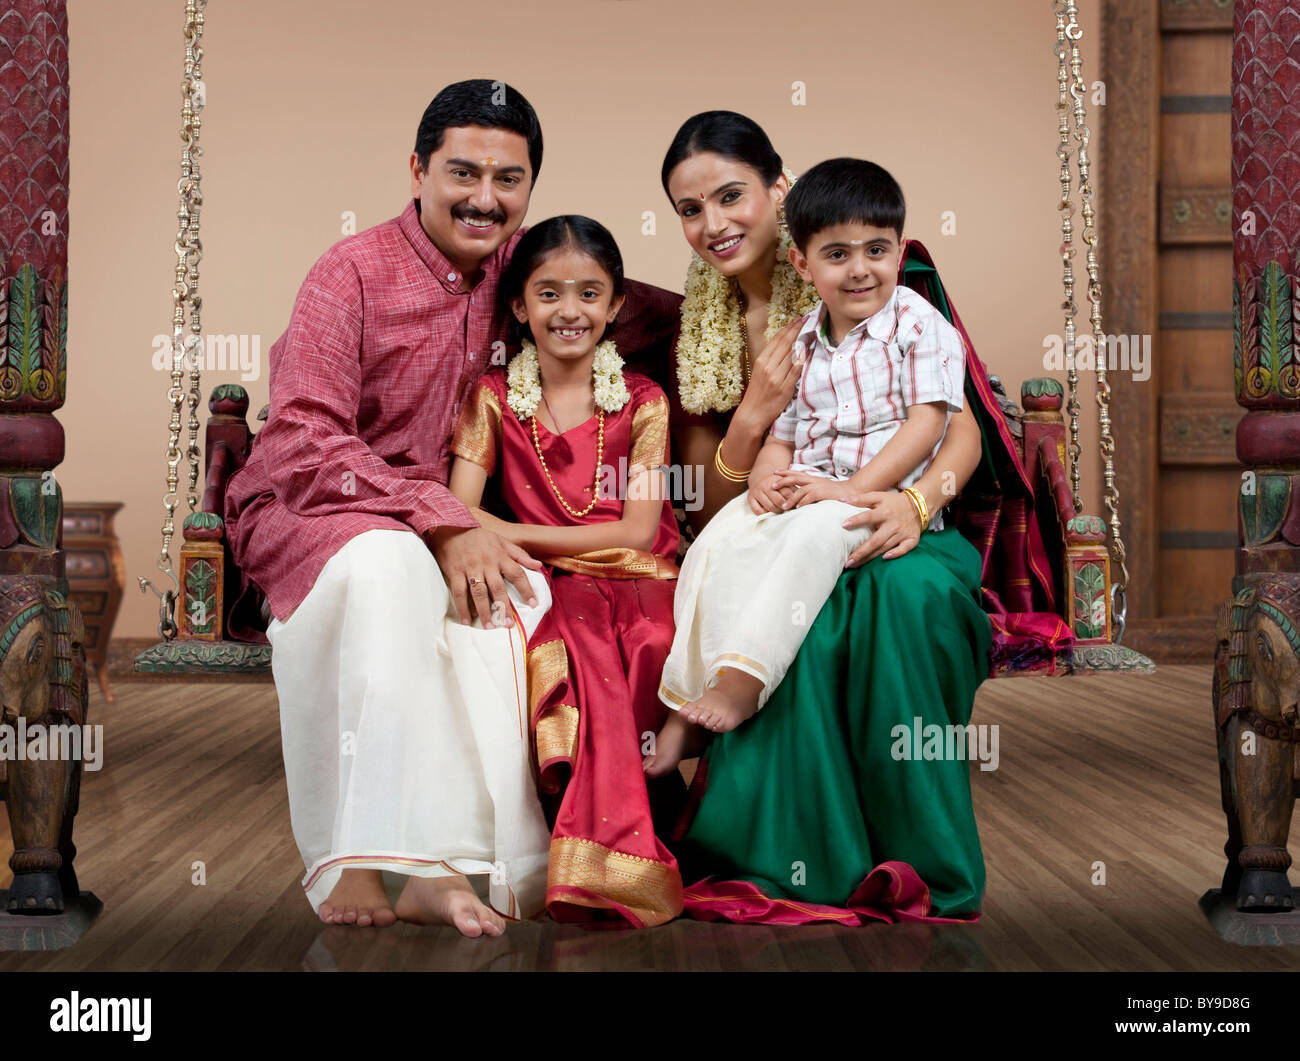 South Indian Family Stock Photos & South Indian Family Stock Images ...